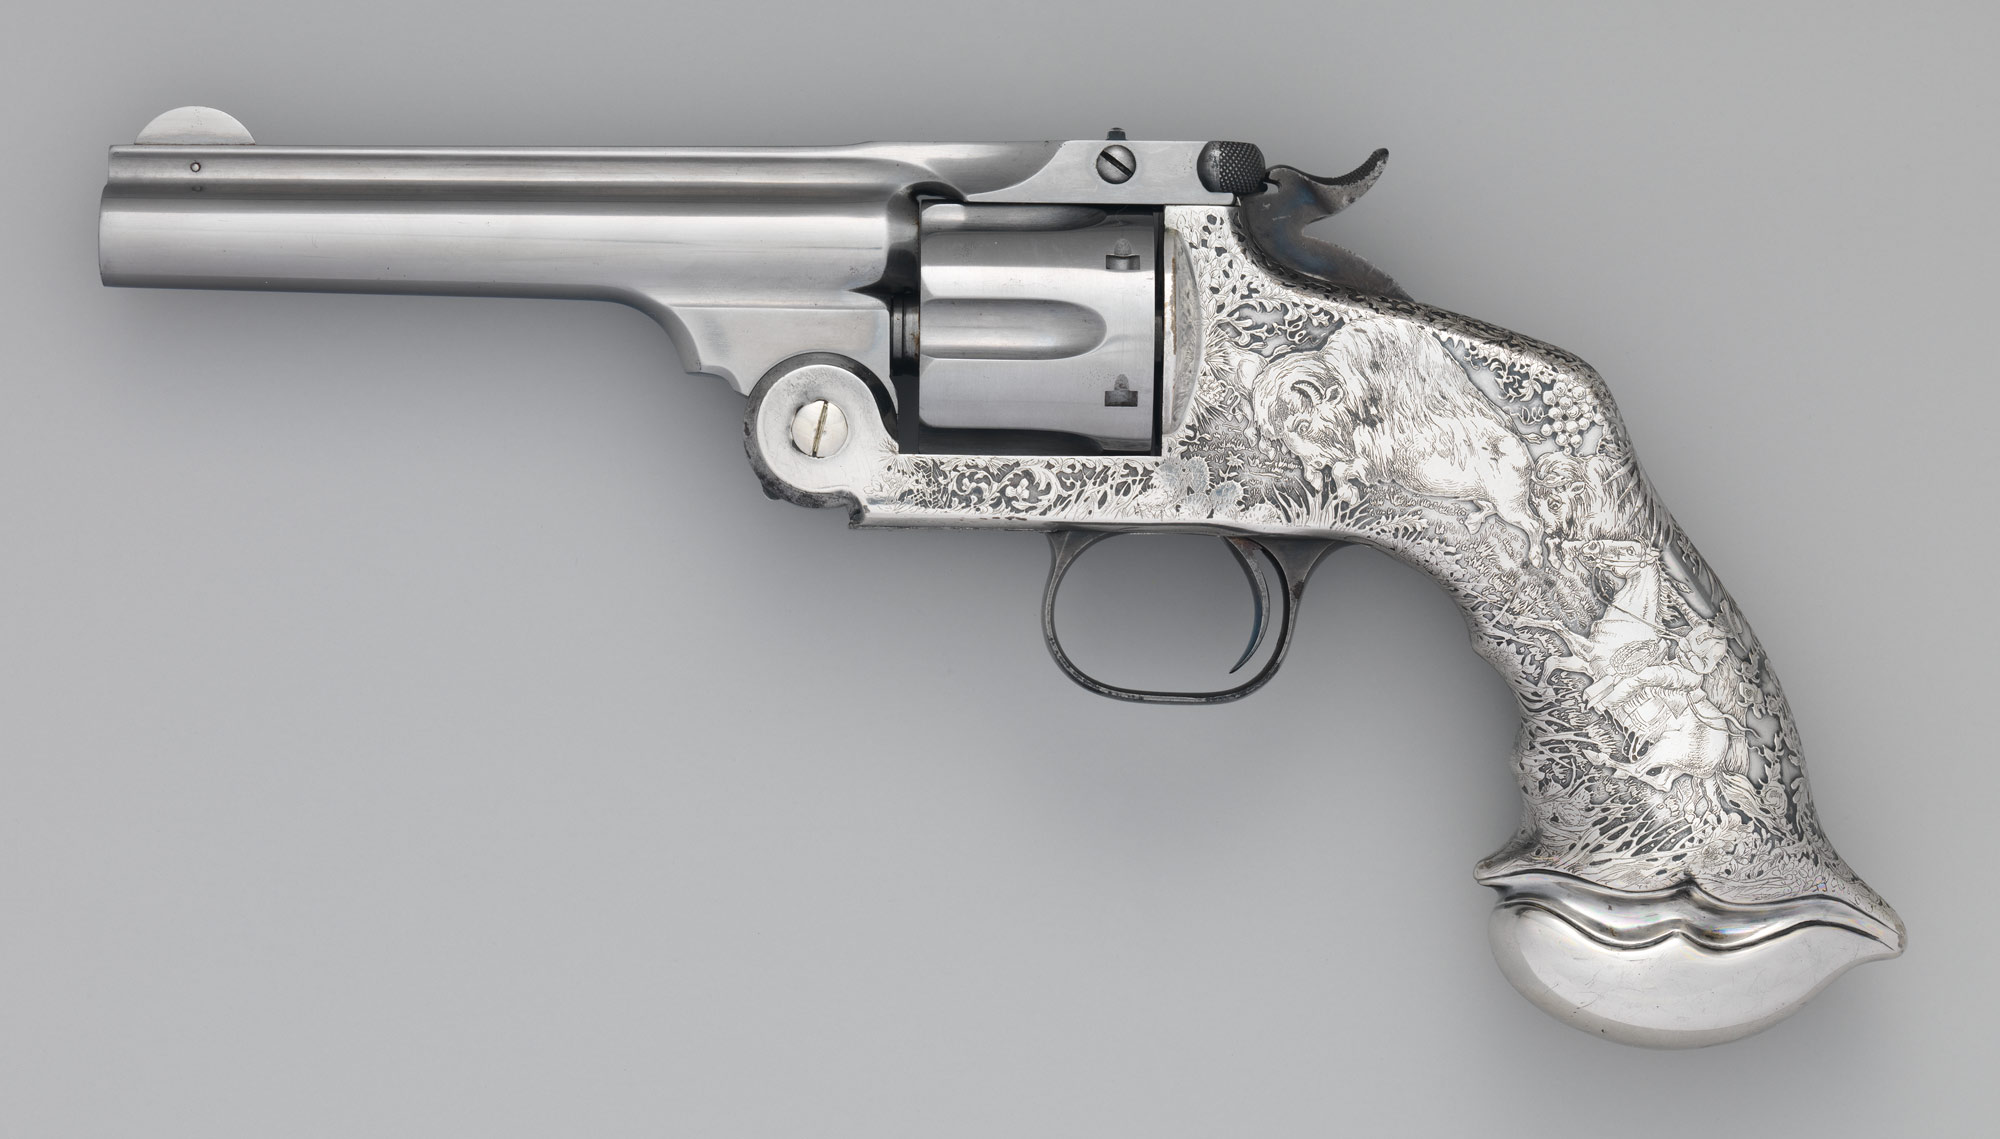 Smith and Wesson .44 New Model No. 3 Single-Action Revolver, serial no. 25120